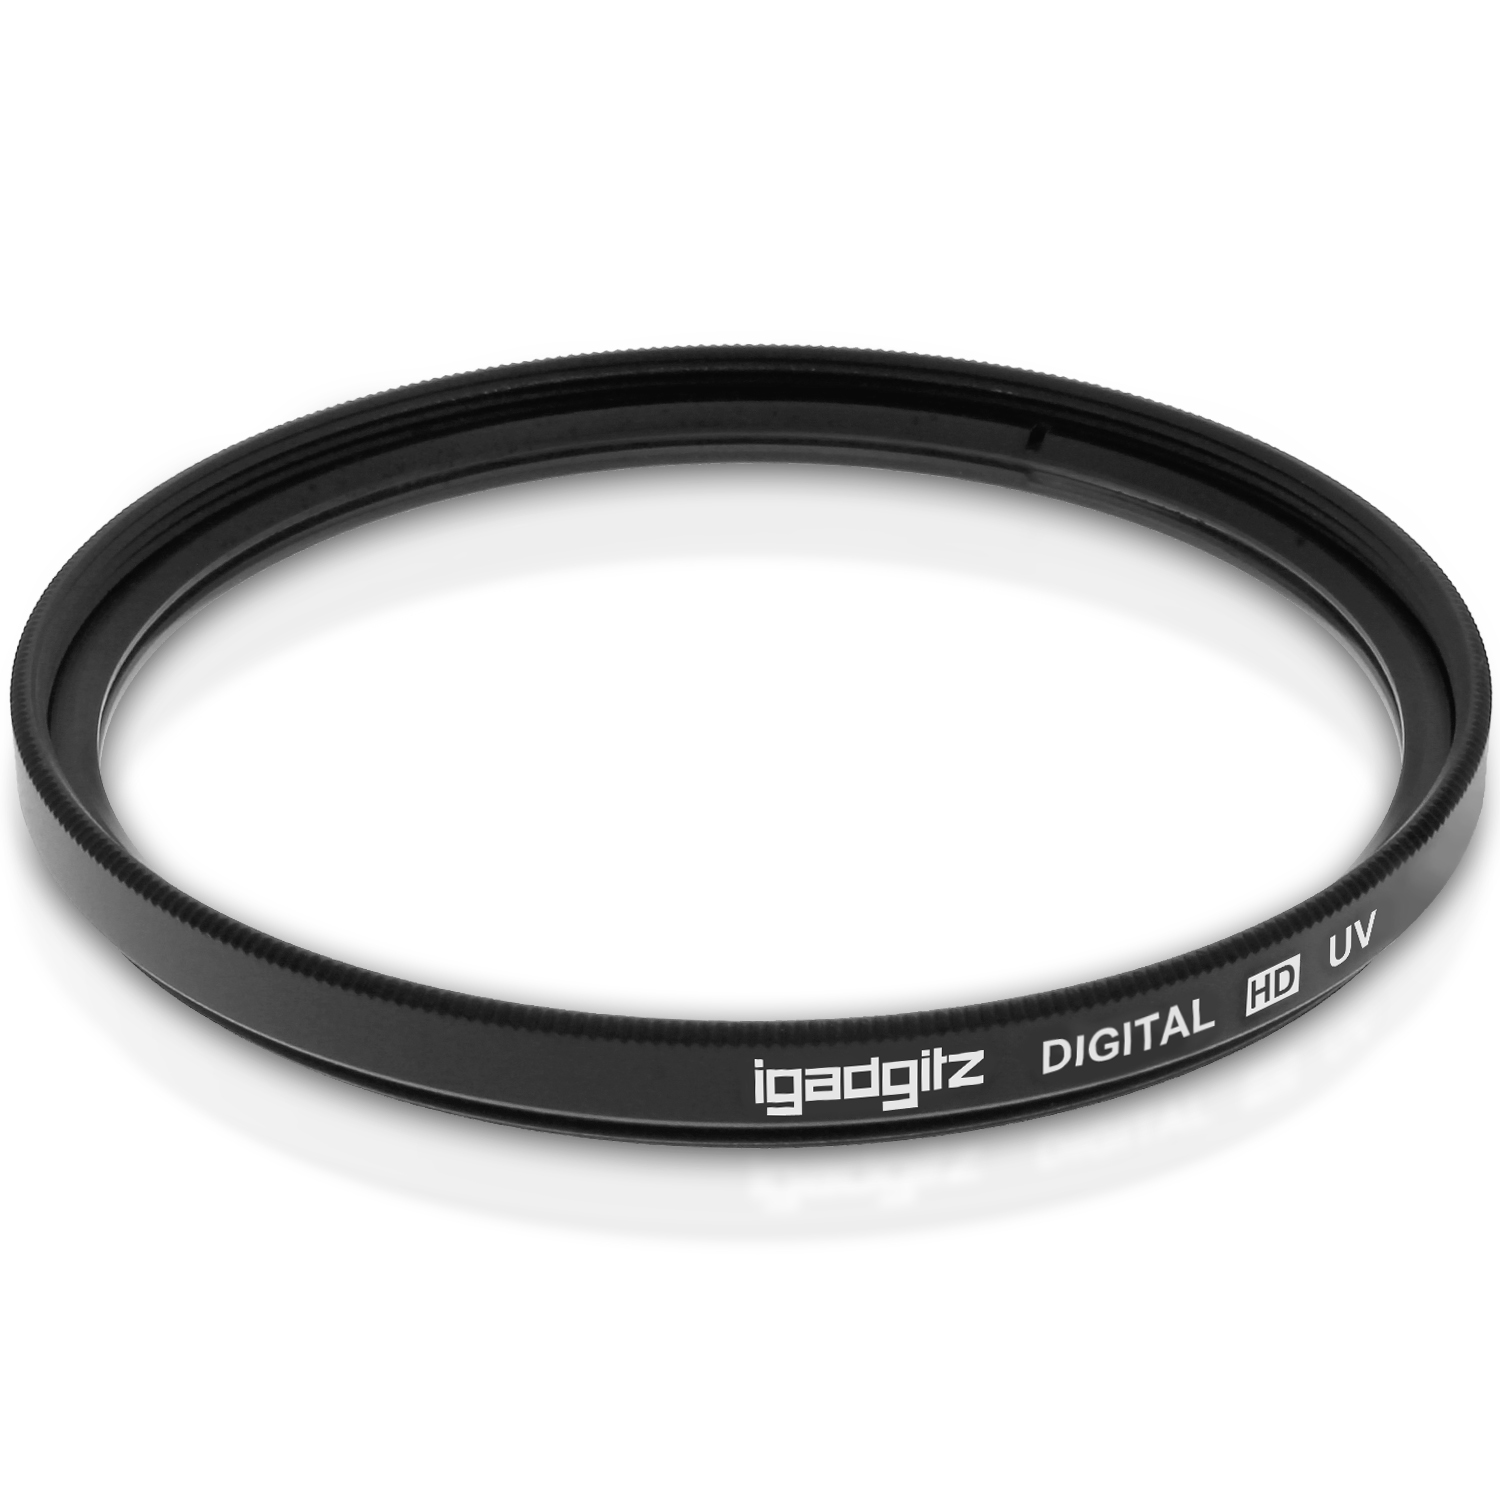 iGadgitz Xtra 72mm Glass Multi-Coated UV Lens Filter Protection for SLR & DSLR Cameras